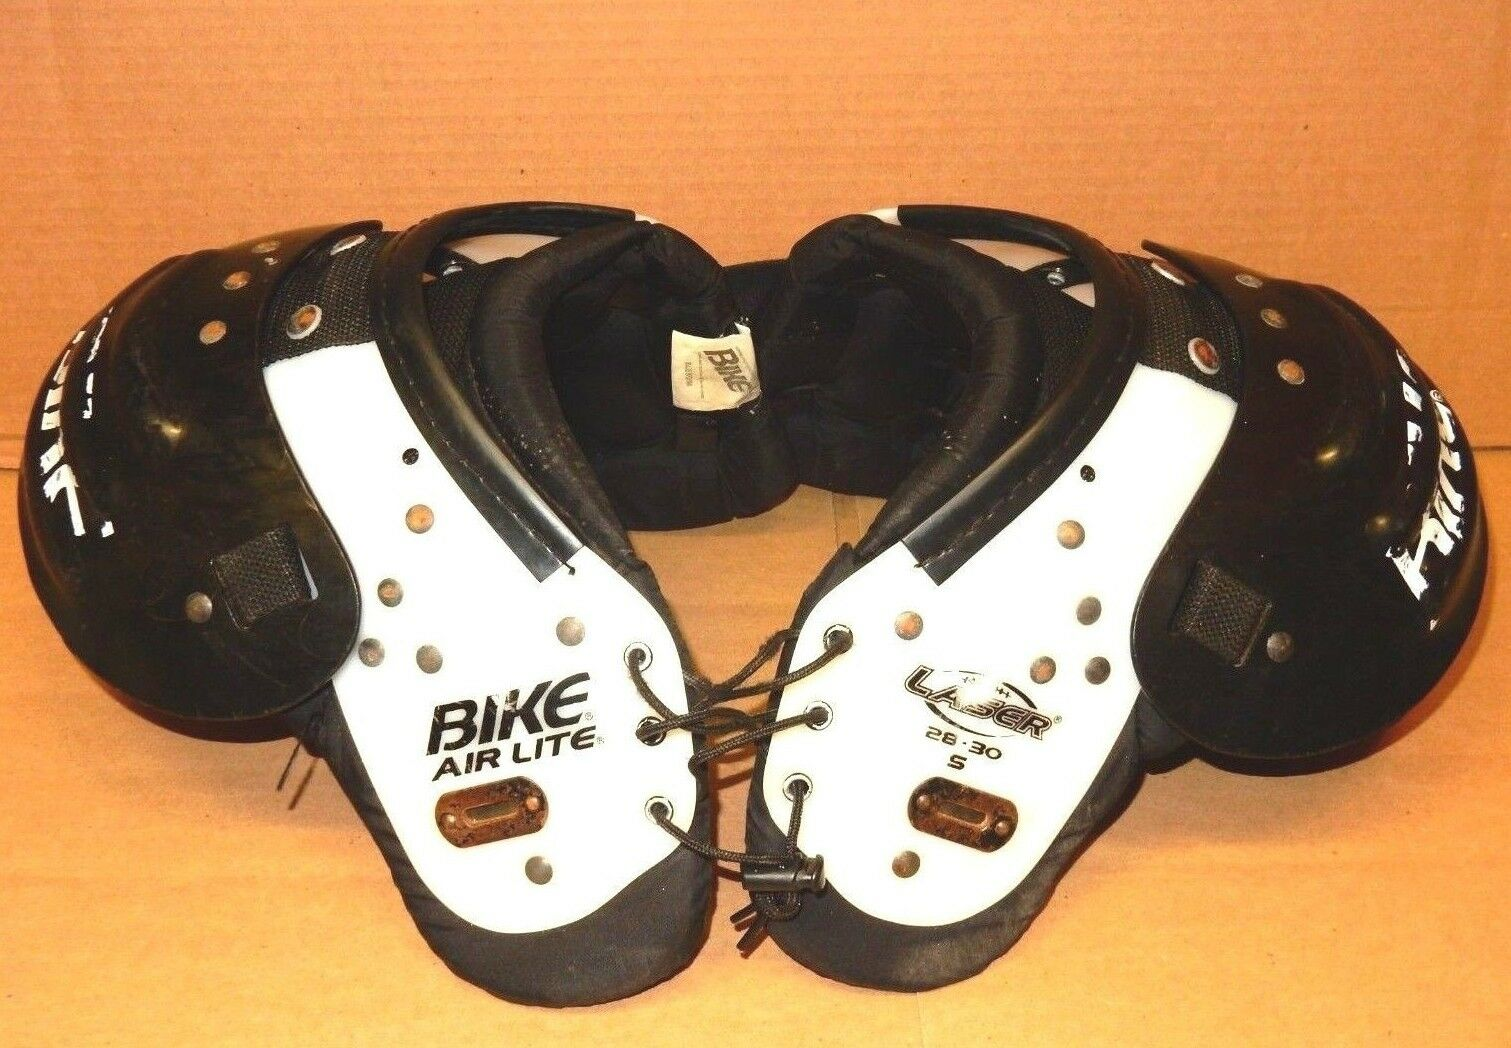 BIKE AIR-LITE FOOTBALL SHOULDER PADS LASER BOYS - 28-30 YOUTH SMALL 90-120 lbs